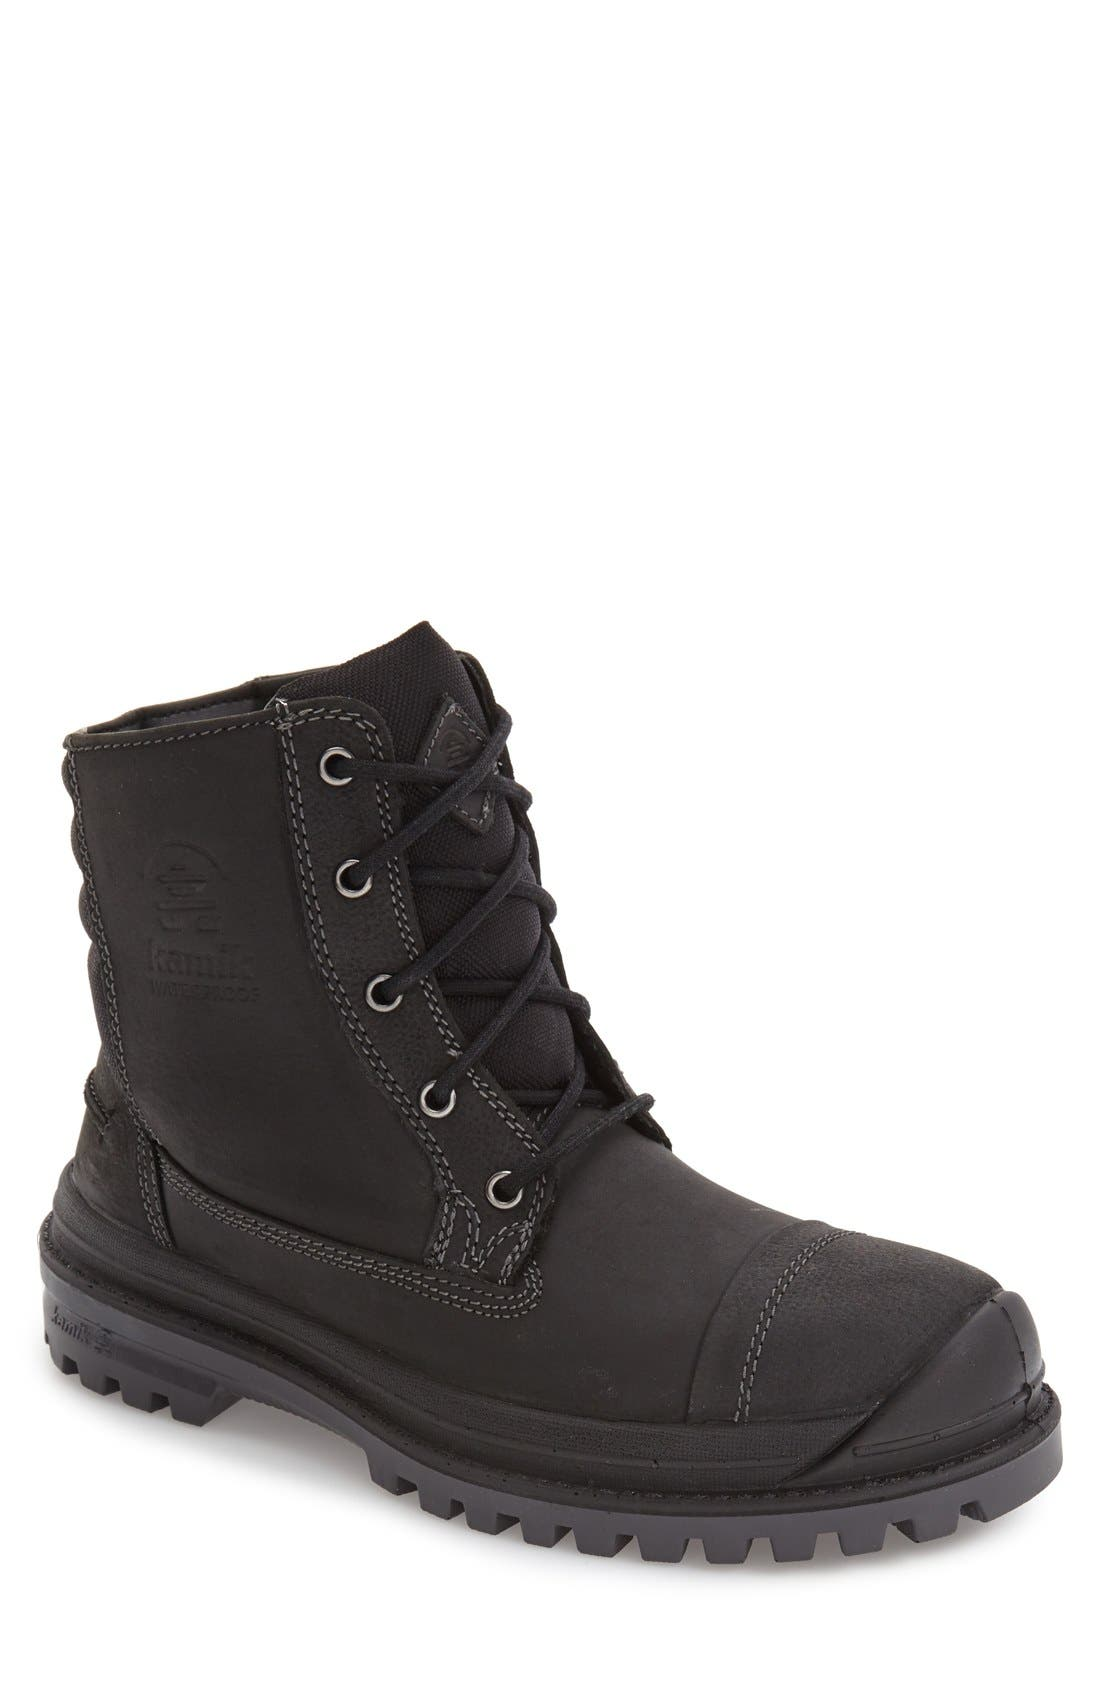 Main Image - Kamik Griffon Waterproof Boot (Men)